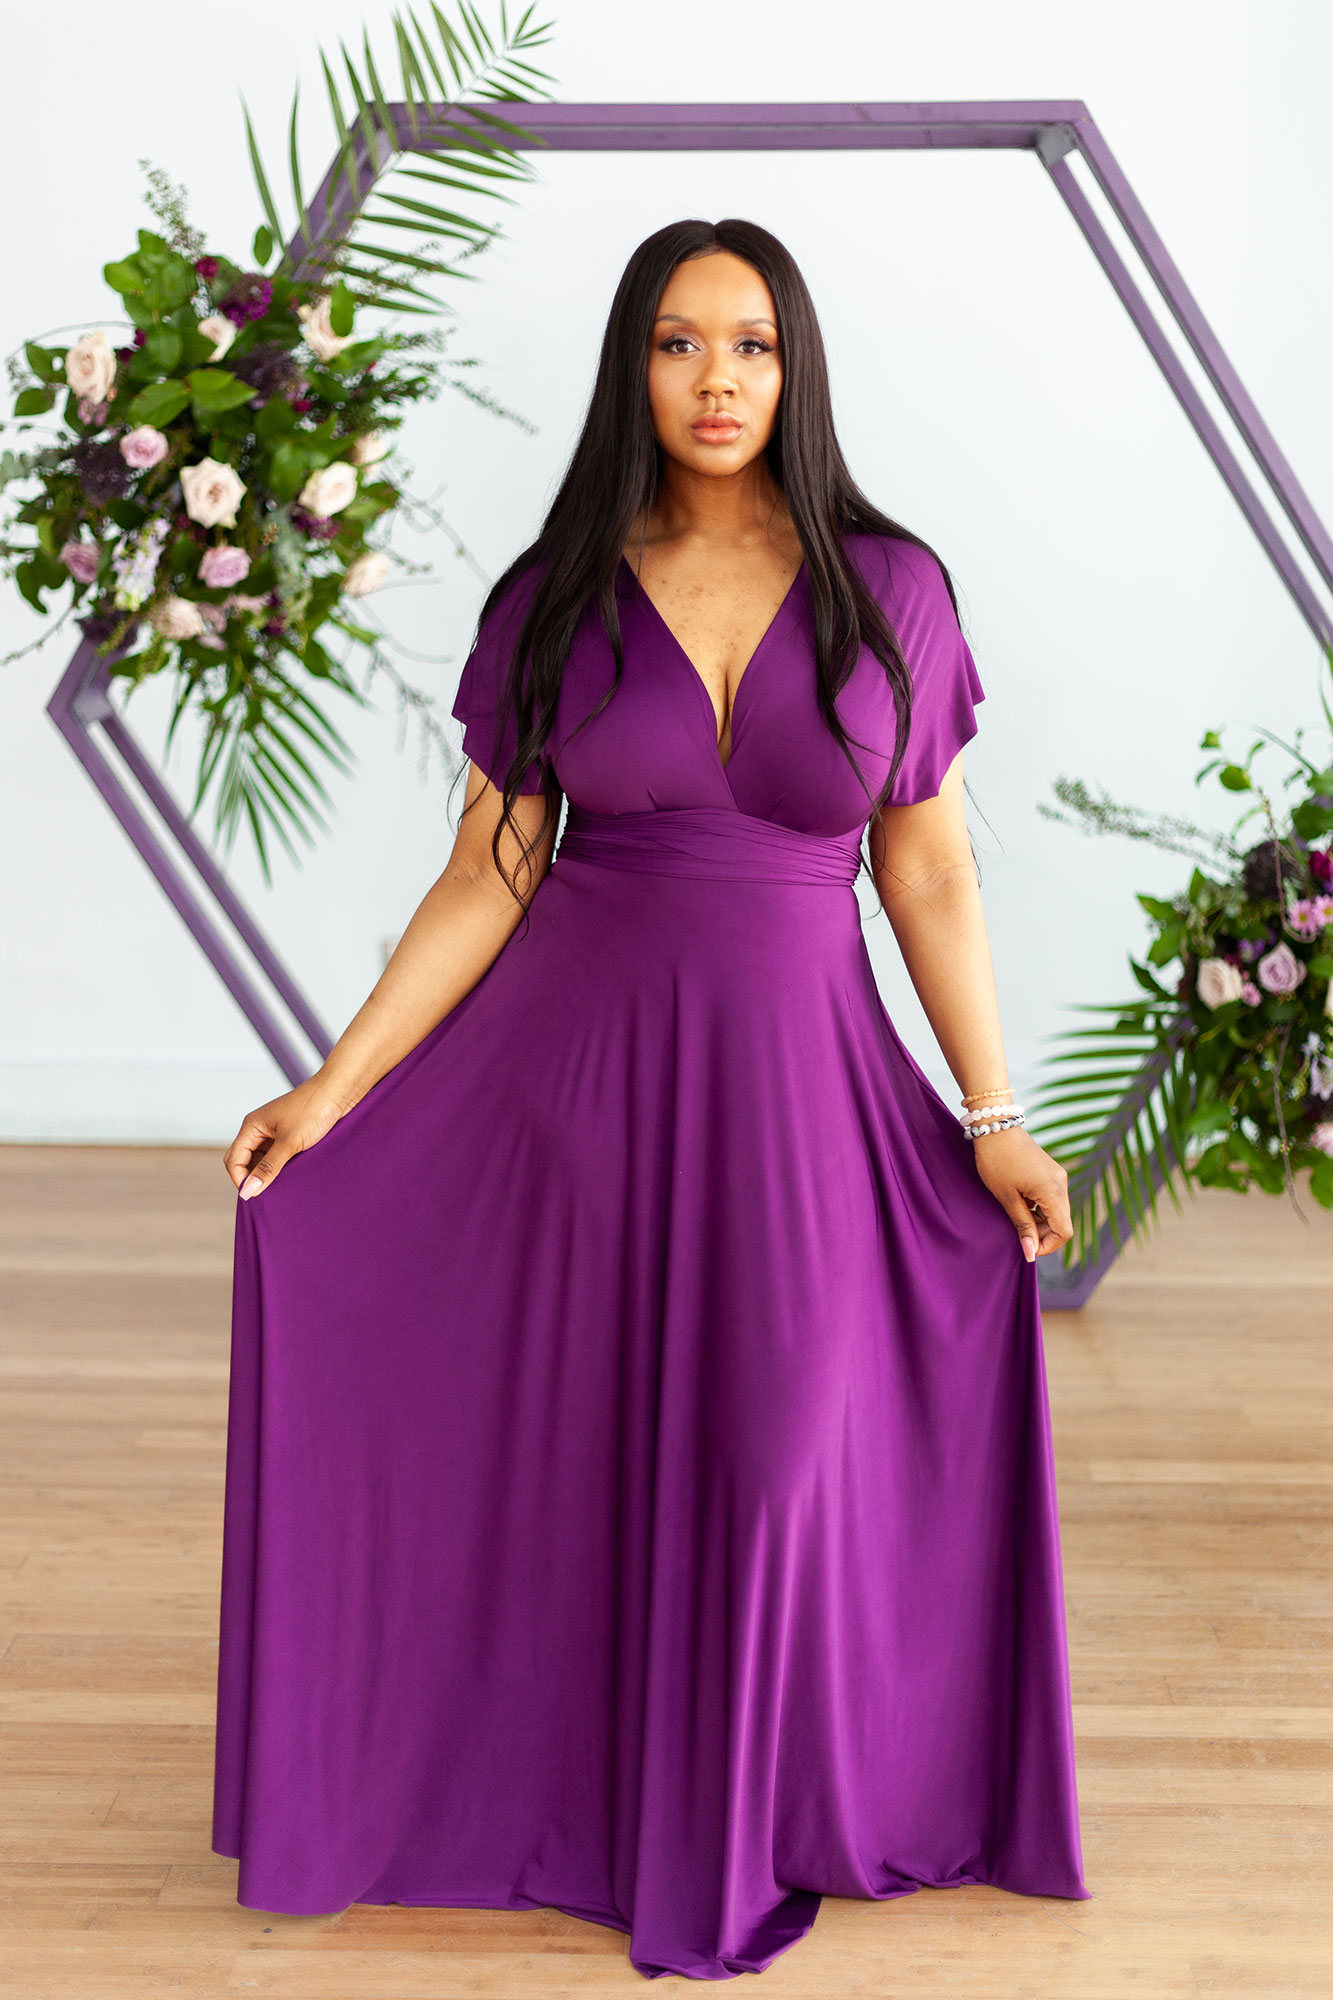 Henkaa fall wedding collection with bridesmaid in plum purple dress